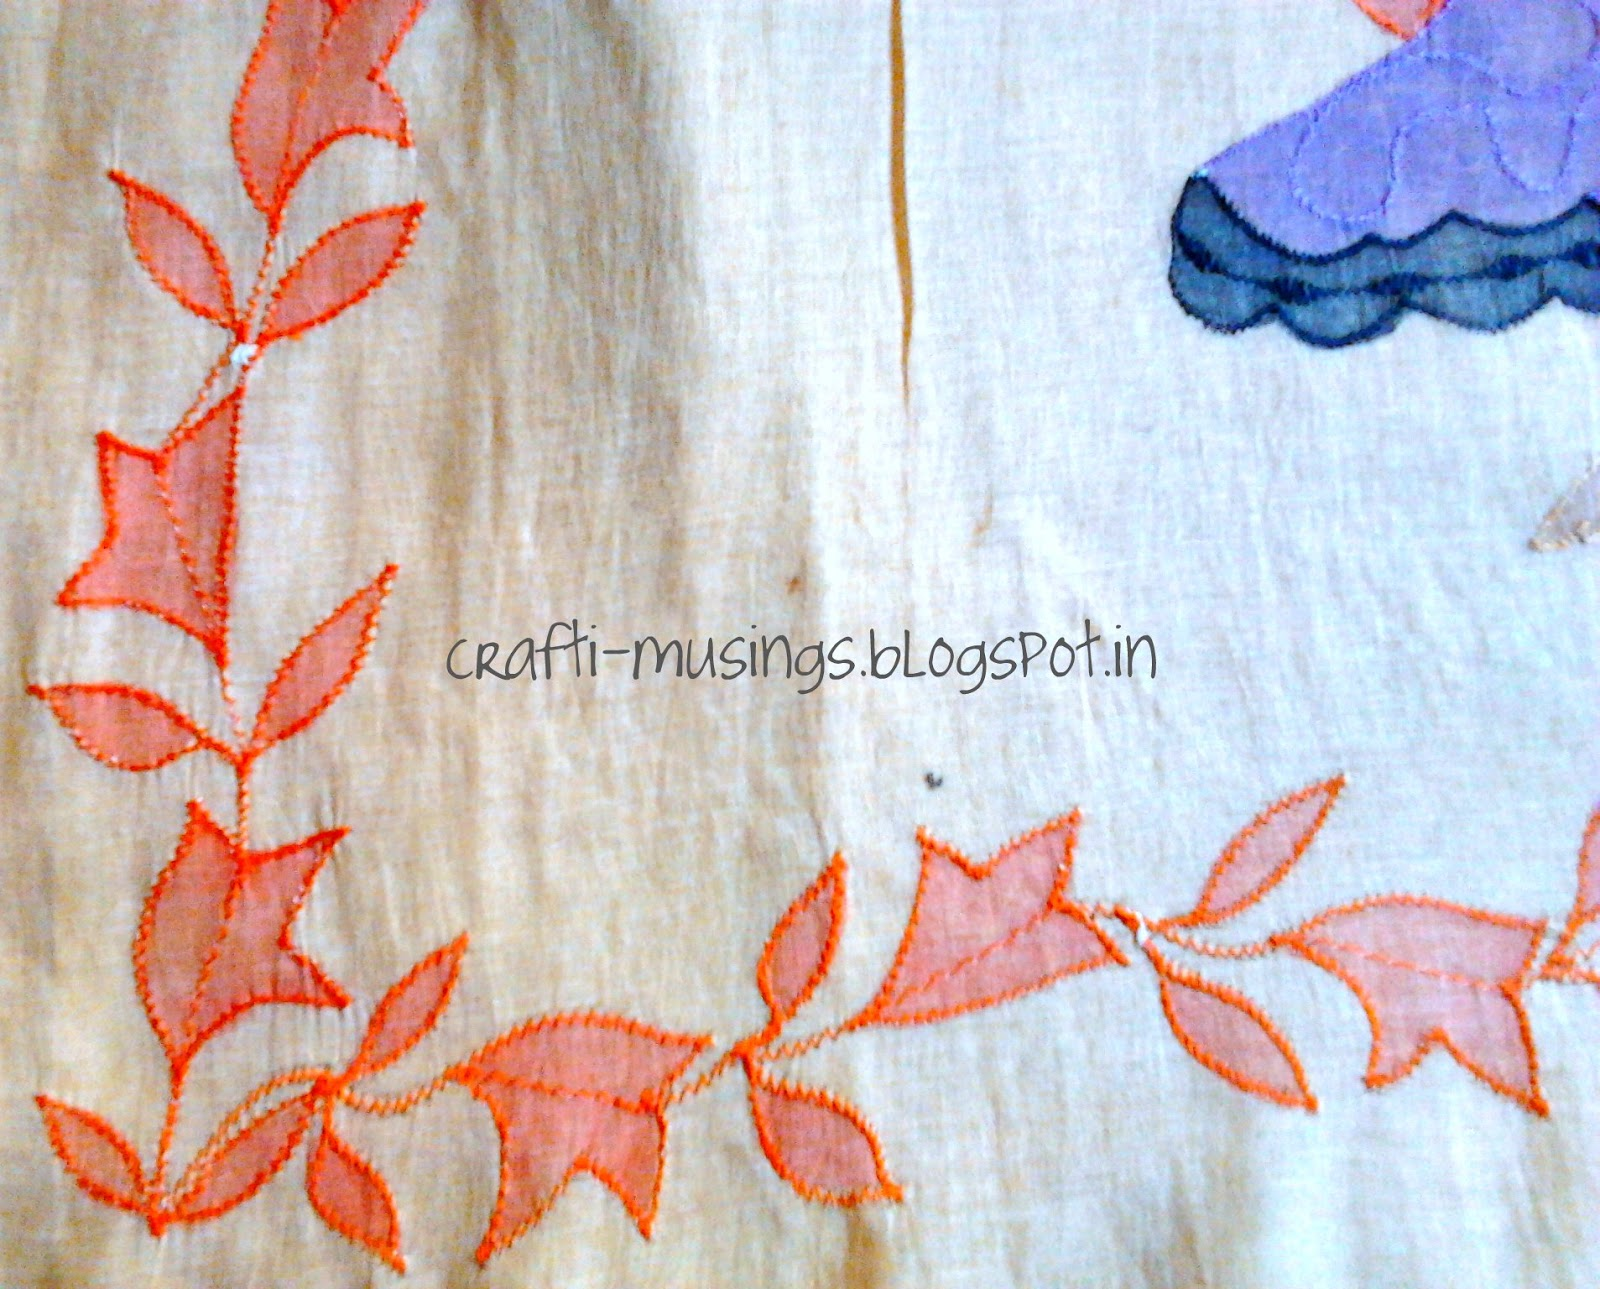 Embroidery Designs for Sarees Border http://hawaiidermatology.com/saree/saree-border-design-shown-out-flash-but-embroidery-the.htm